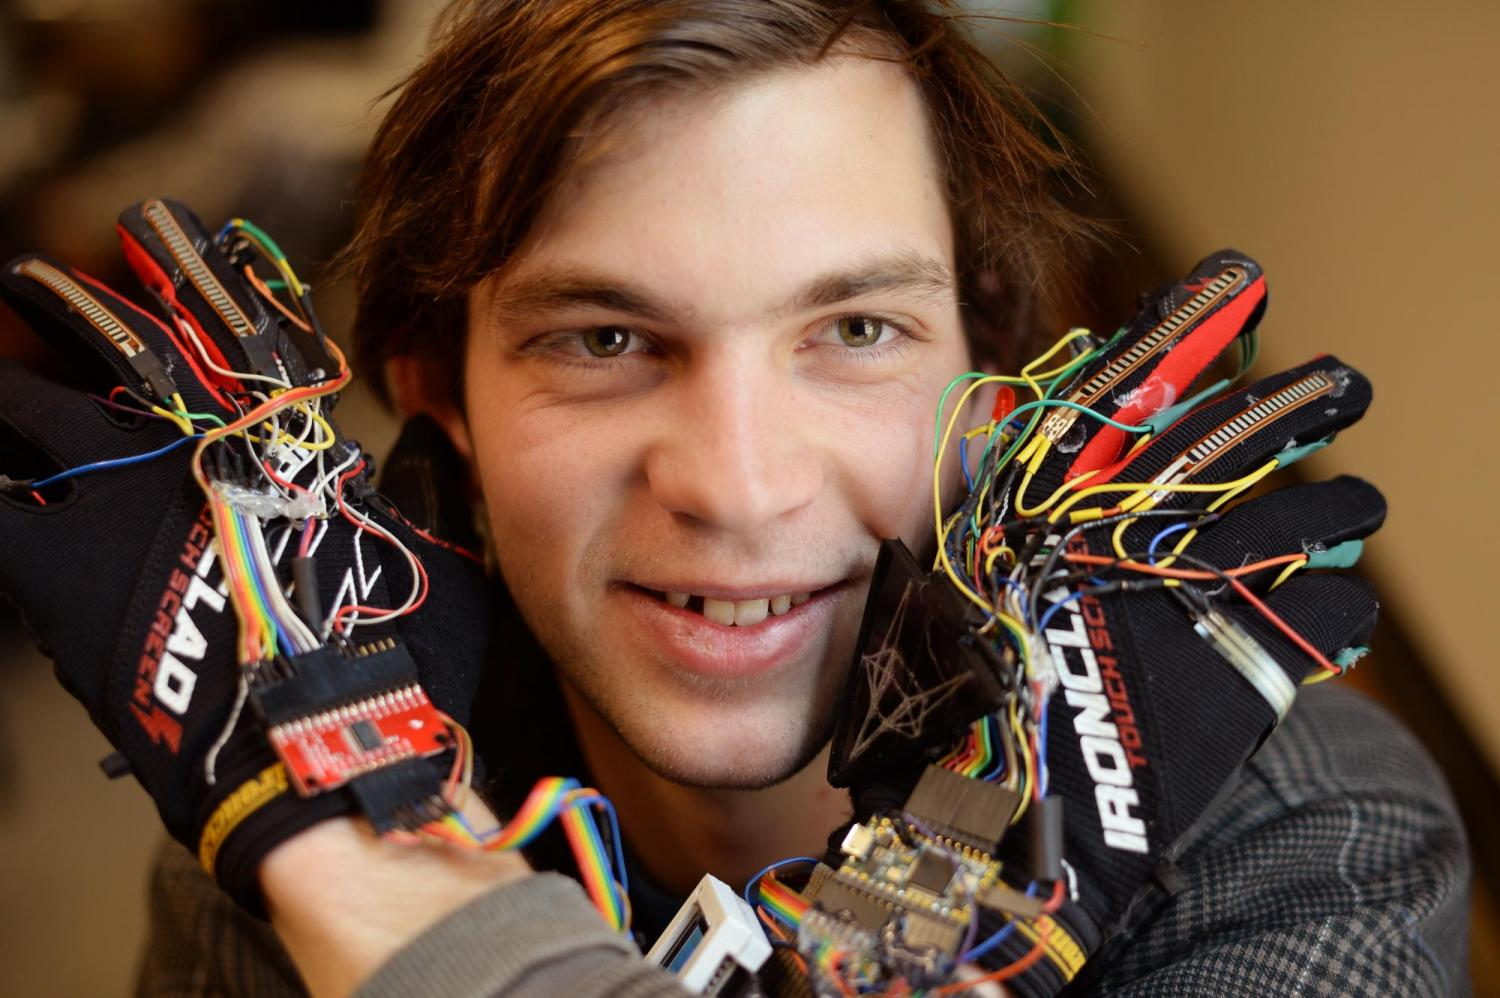 Photo of Kristof Klipfel with musical gloves